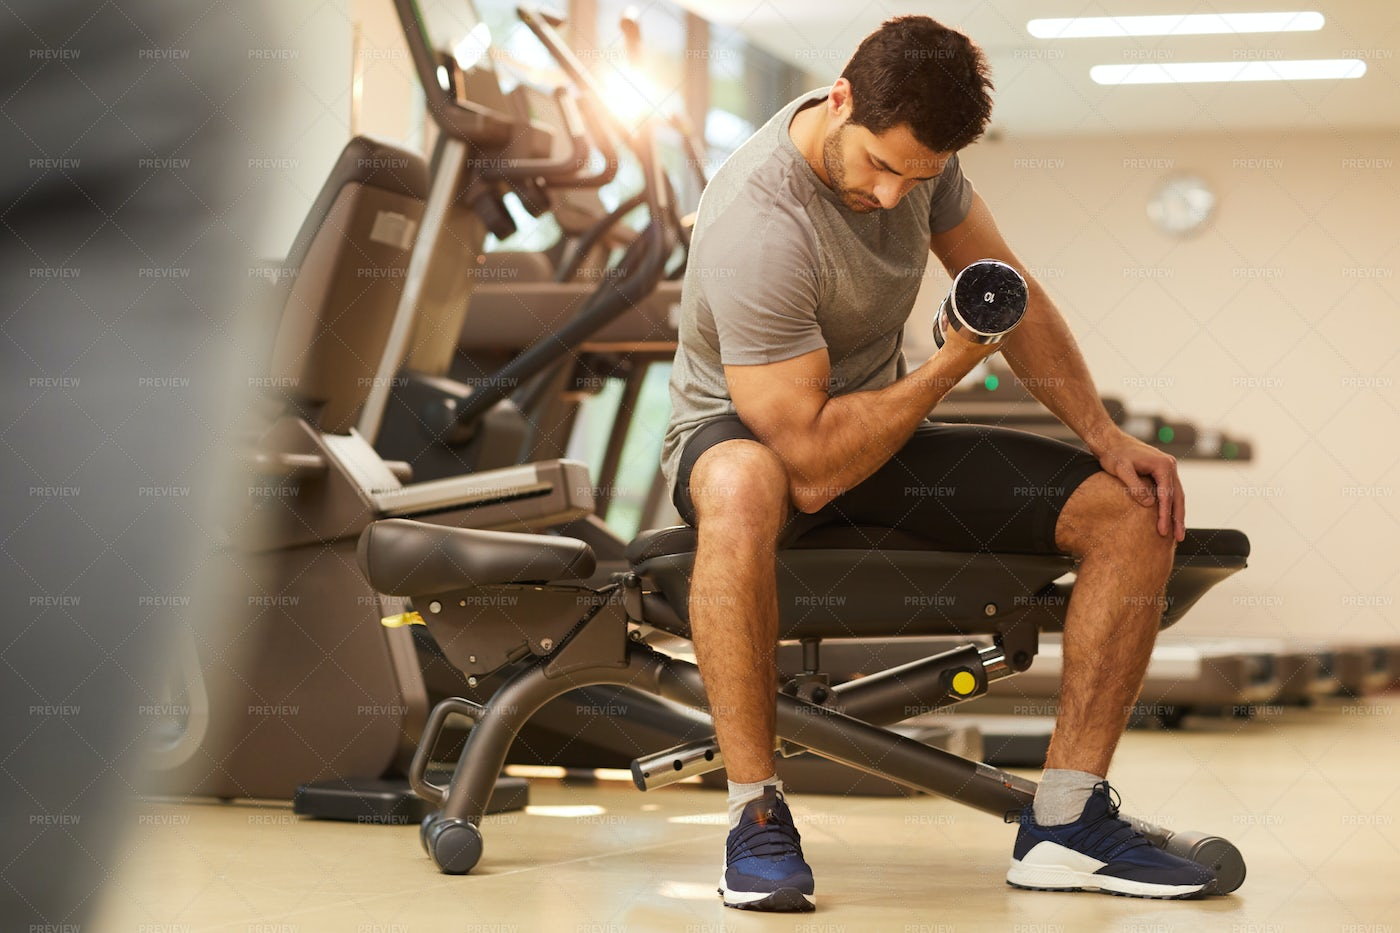 Man Pumping Muscles In Gym: Stock Photos